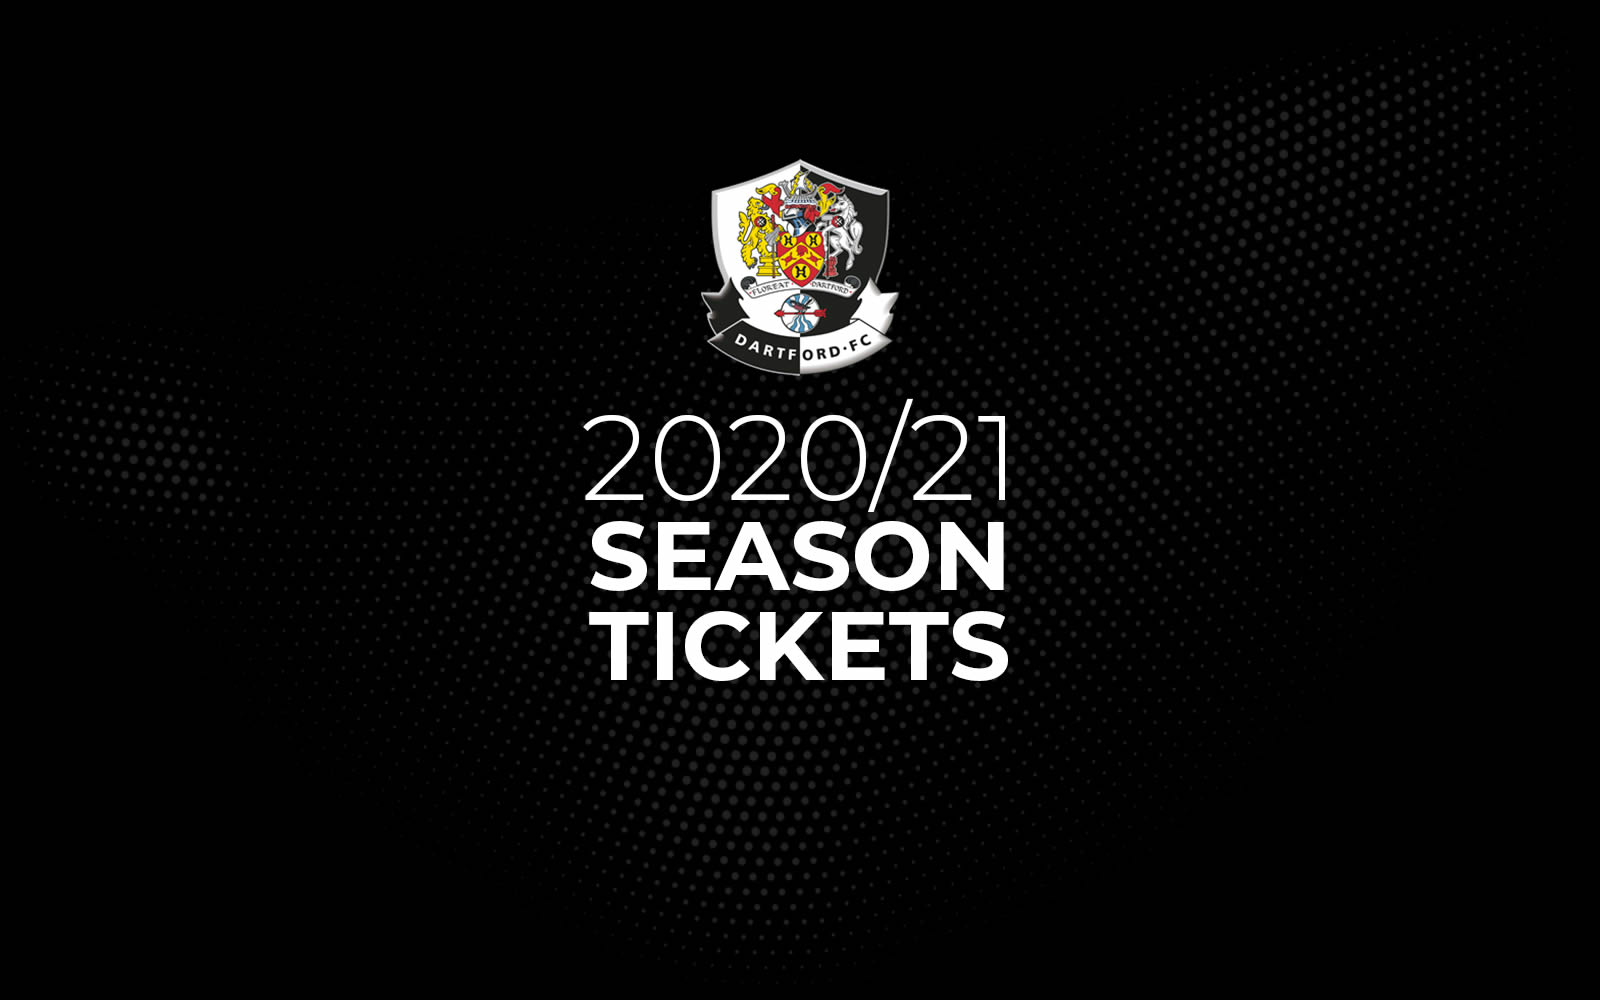 Dartford 20/21 Season Tickets